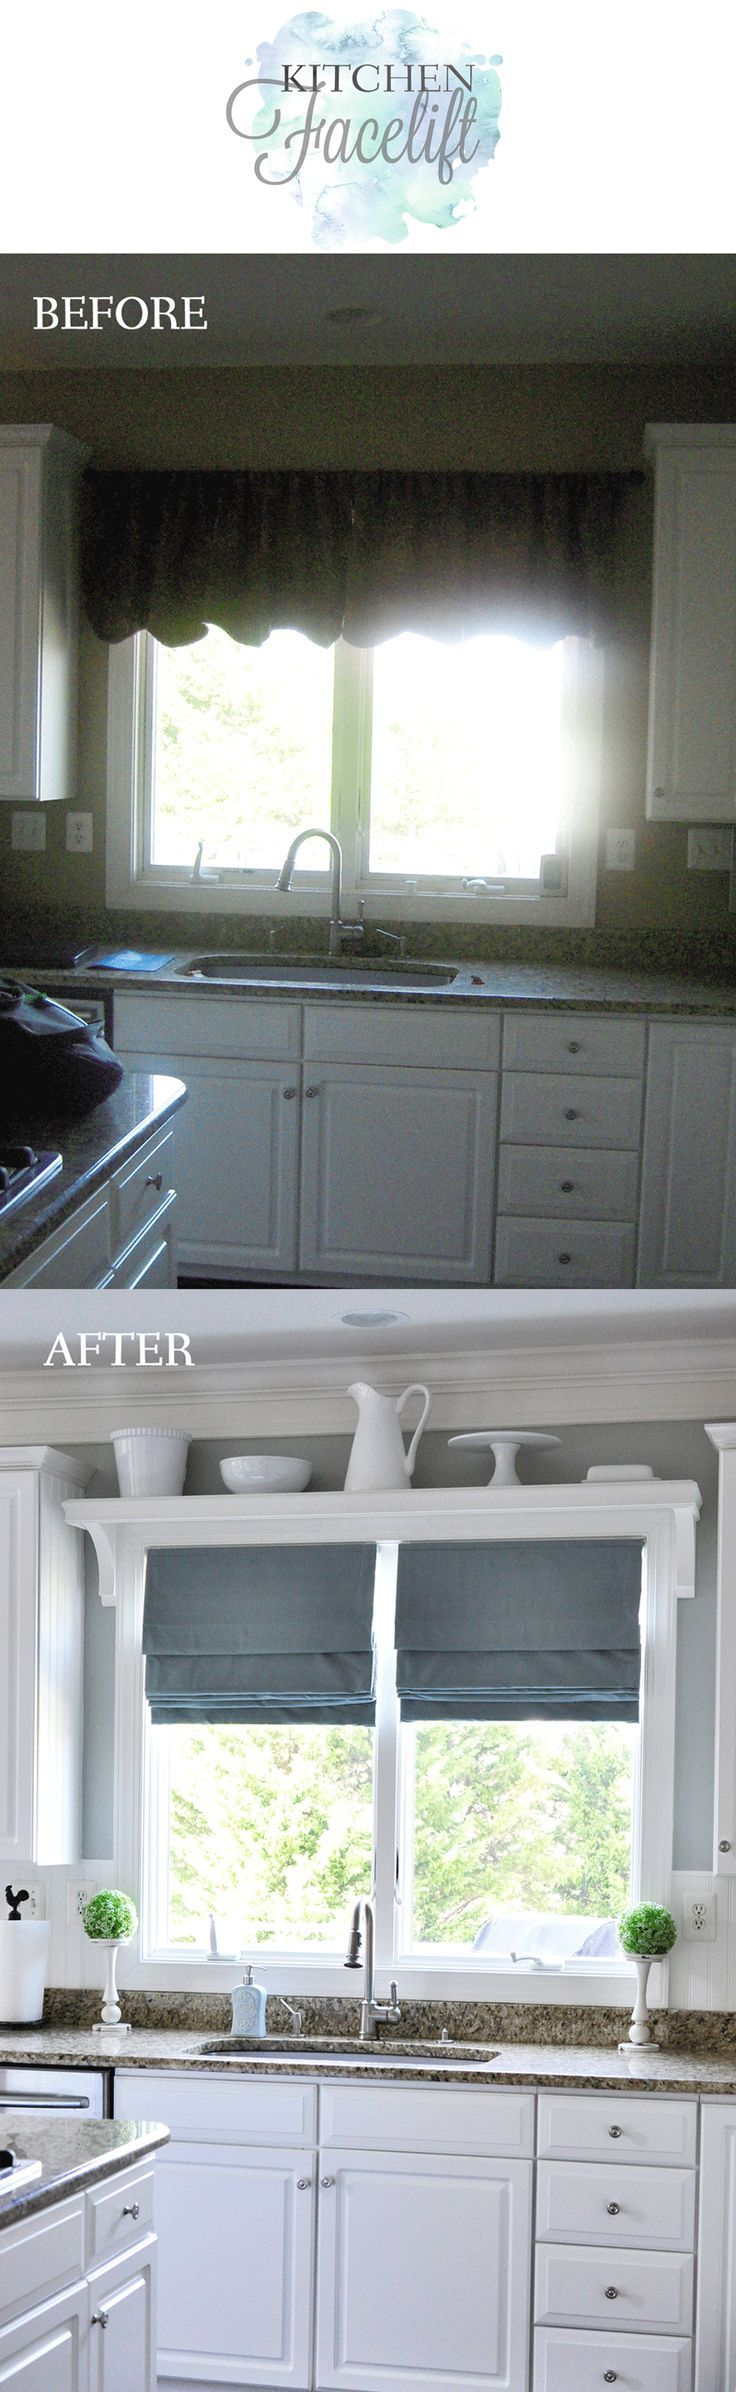 Remodelaholic | White Kitchen Makeover: Small Updates to Make a Big Impact - http://centophobe.com/remodelaholic-white-kitchen-makeover-small-updates-to-make-a-big-impact-4/